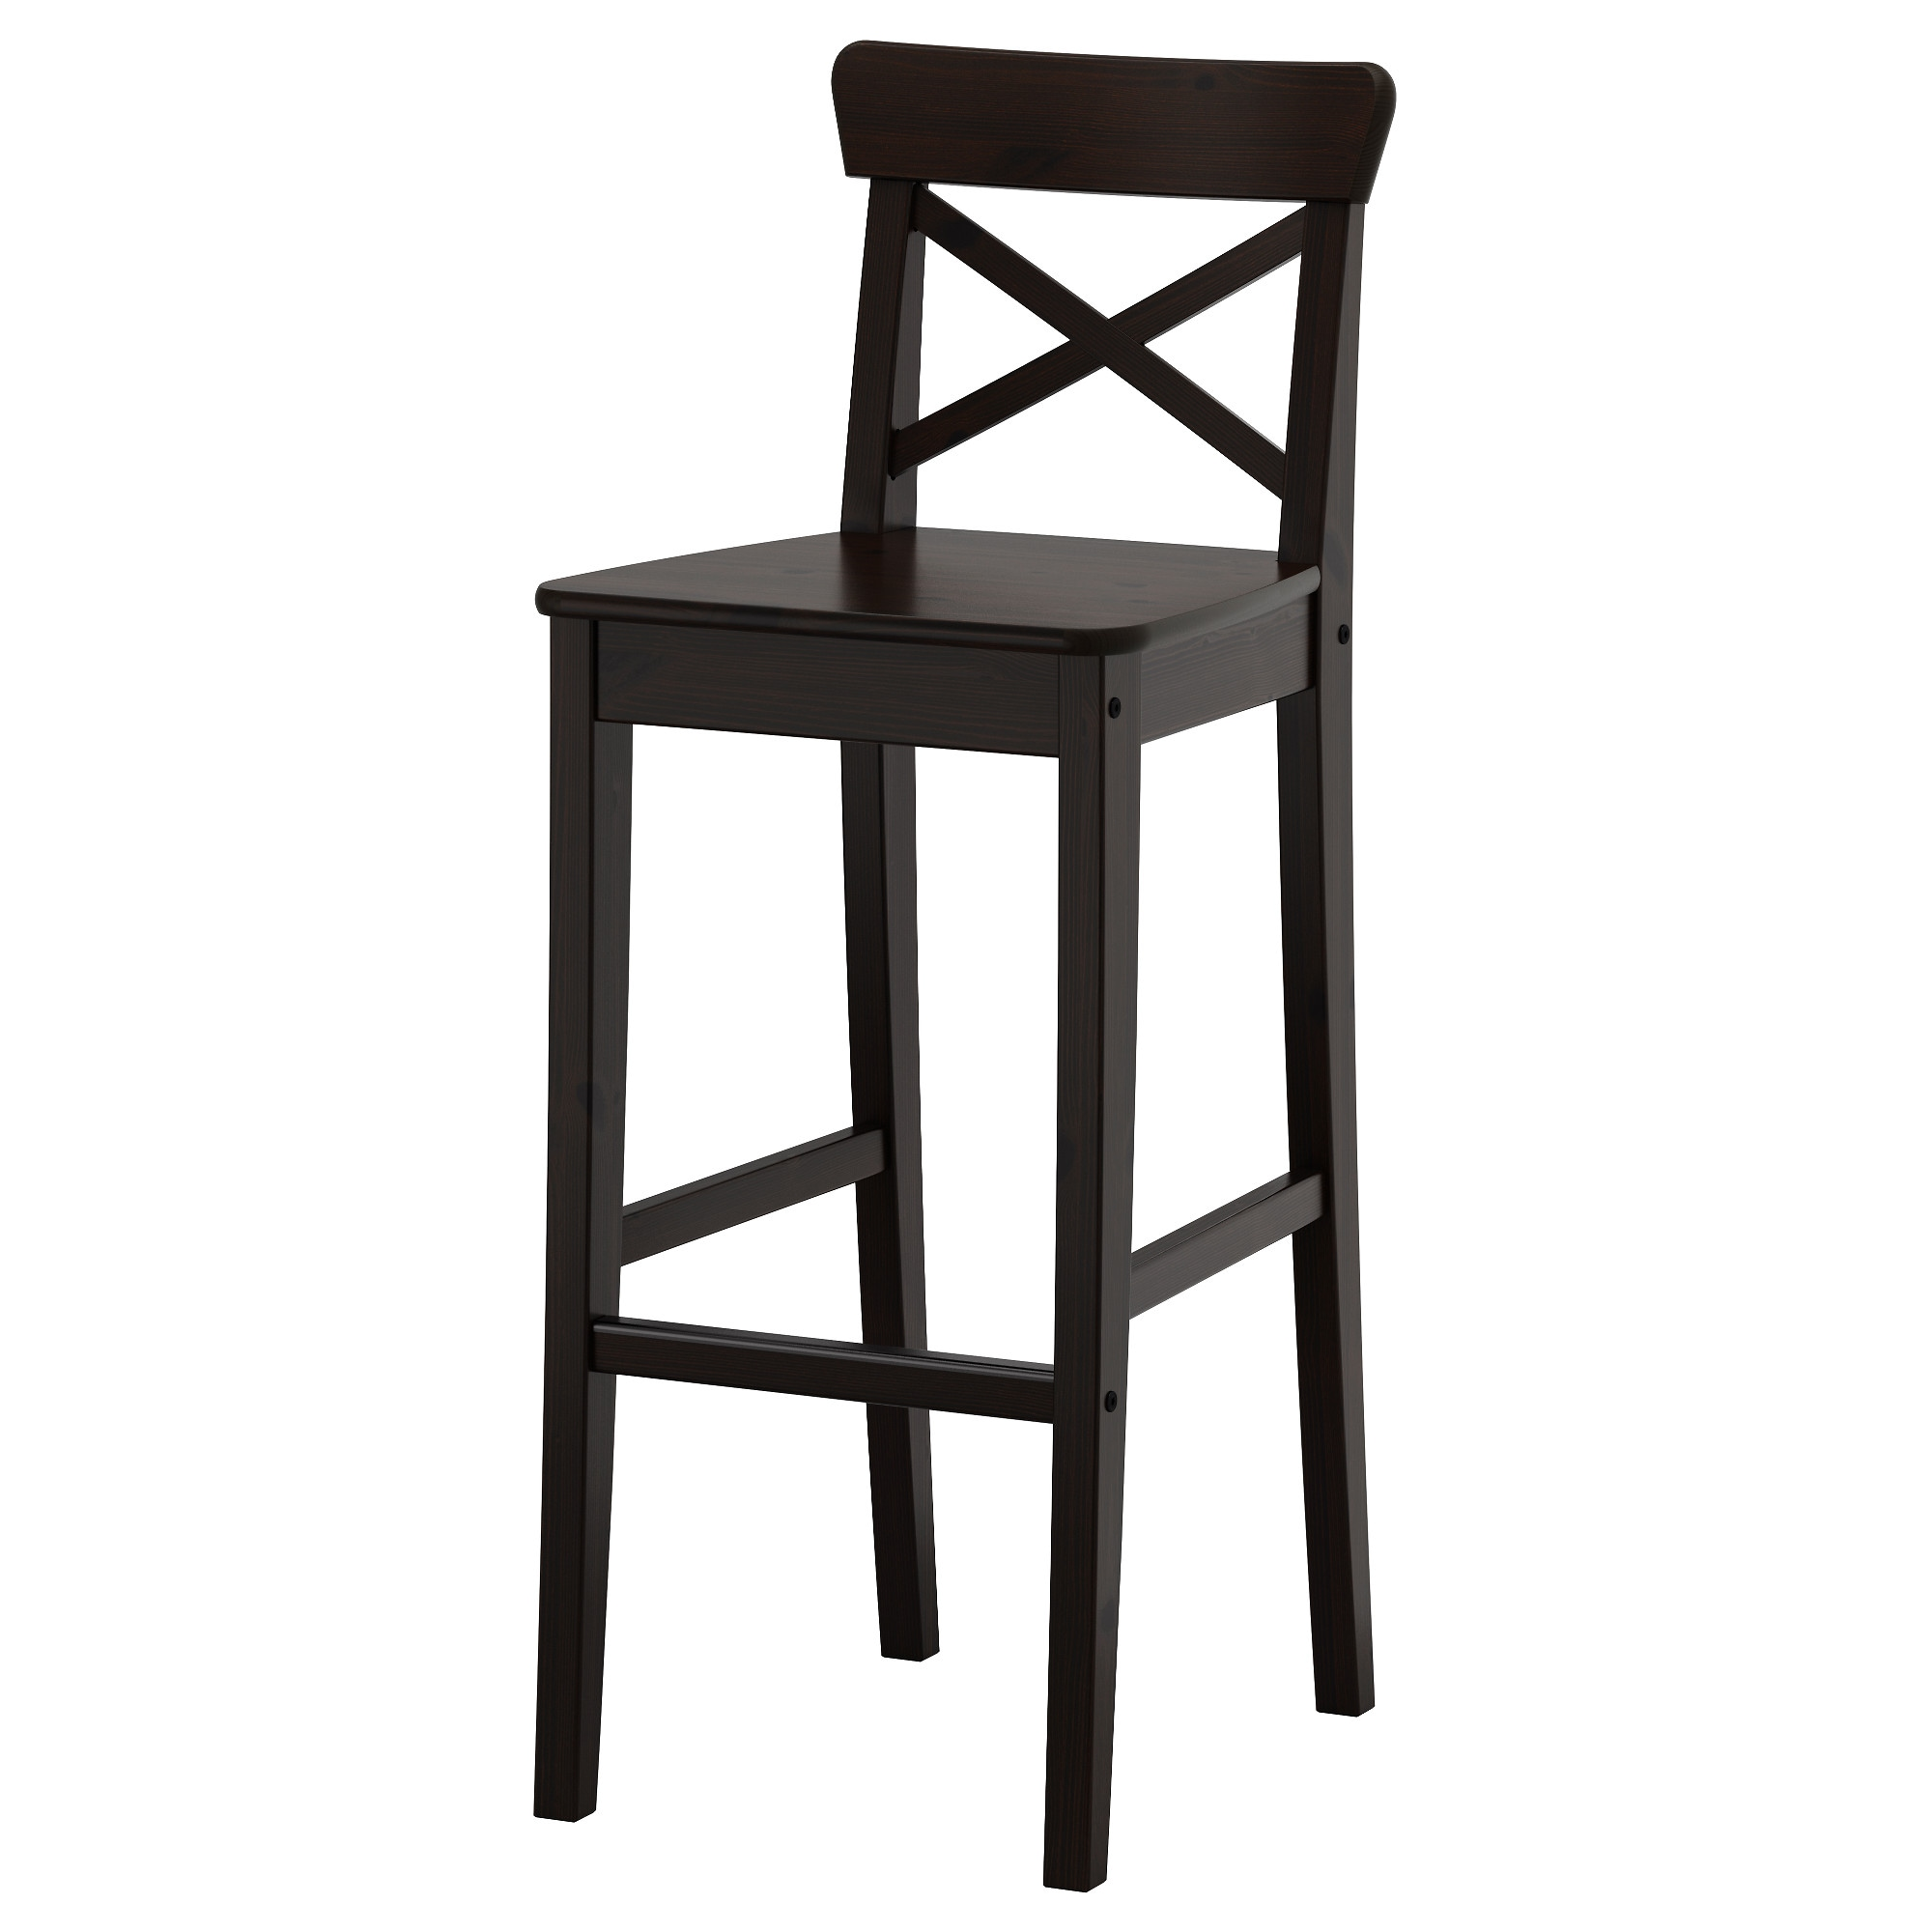 Bar Stools - IKEA